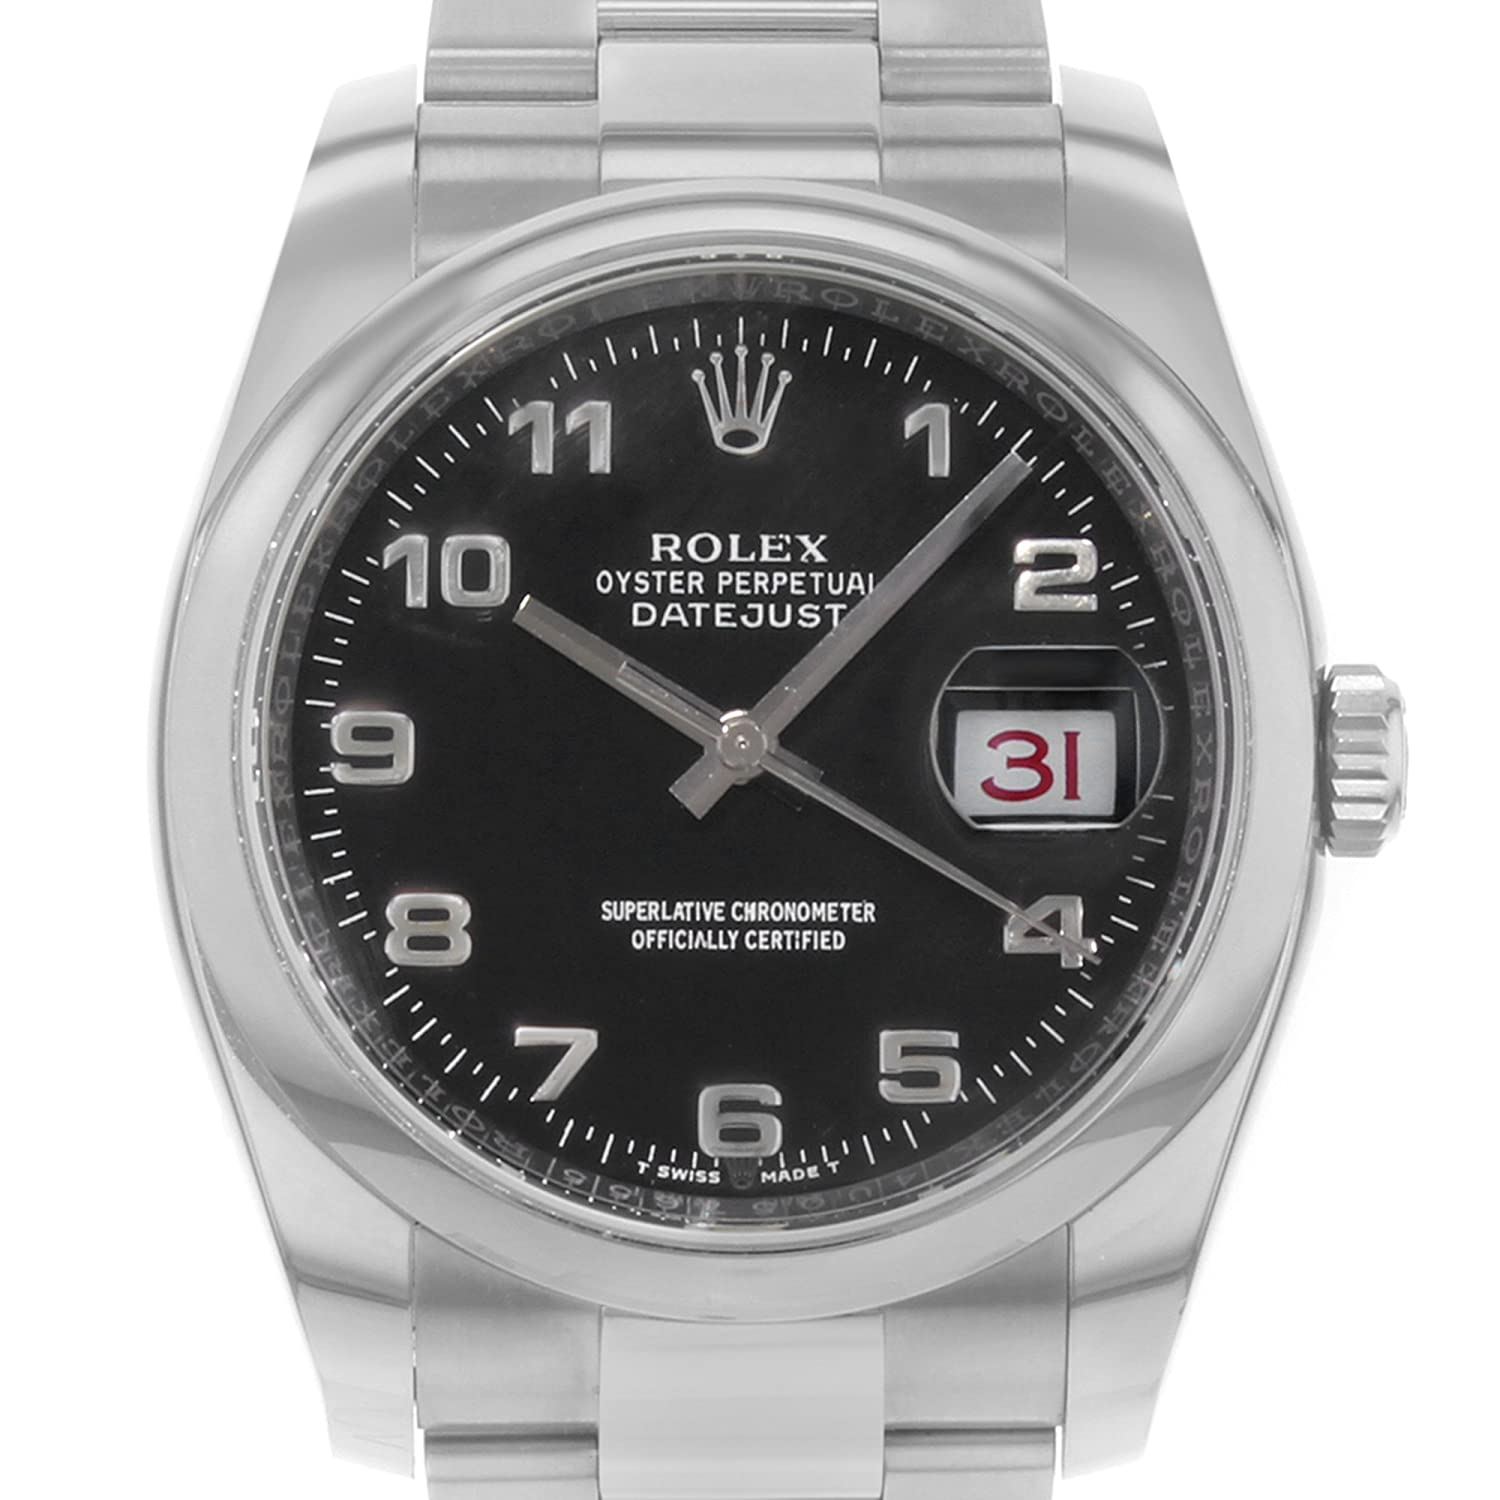 9711b883803 Amazon.com  Rolex Oyster Perpetual DateJust 116200  Rolex  Watches